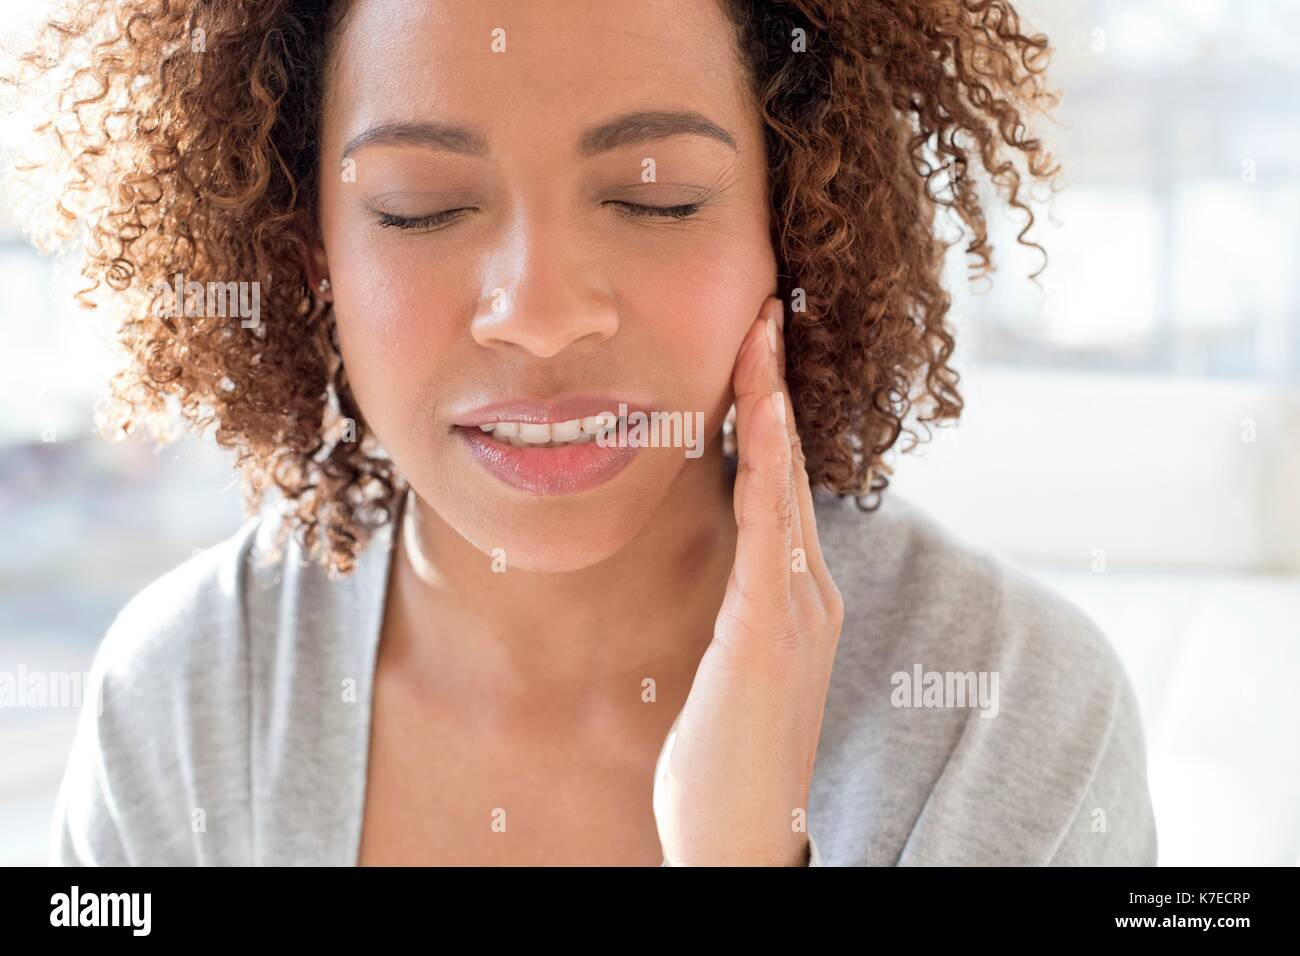 Portrait of mid adult woman touching face. - Stock Image